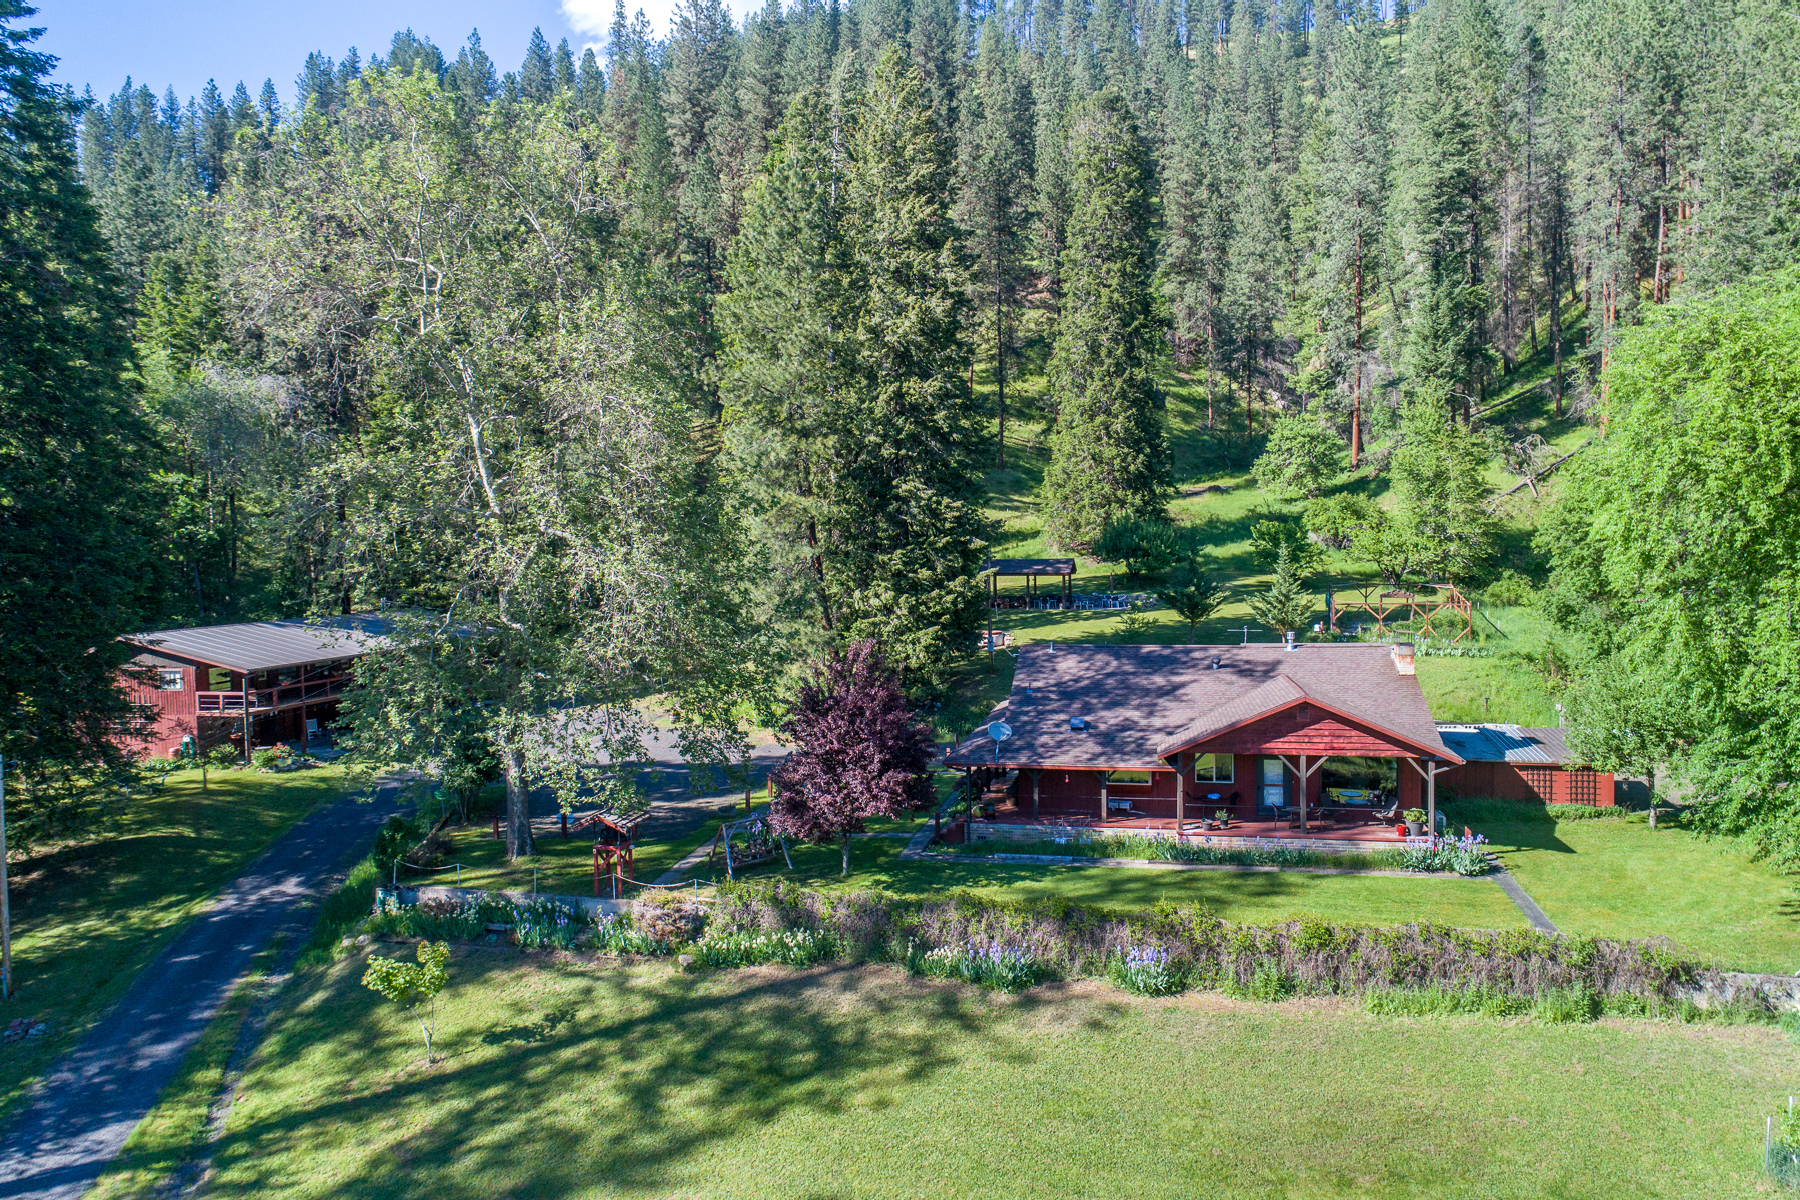 Single Family Home for Sale at REFLECTIONS RESIDENCE 6873 US Highway 12 Kooskia, Idaho 83539 United States